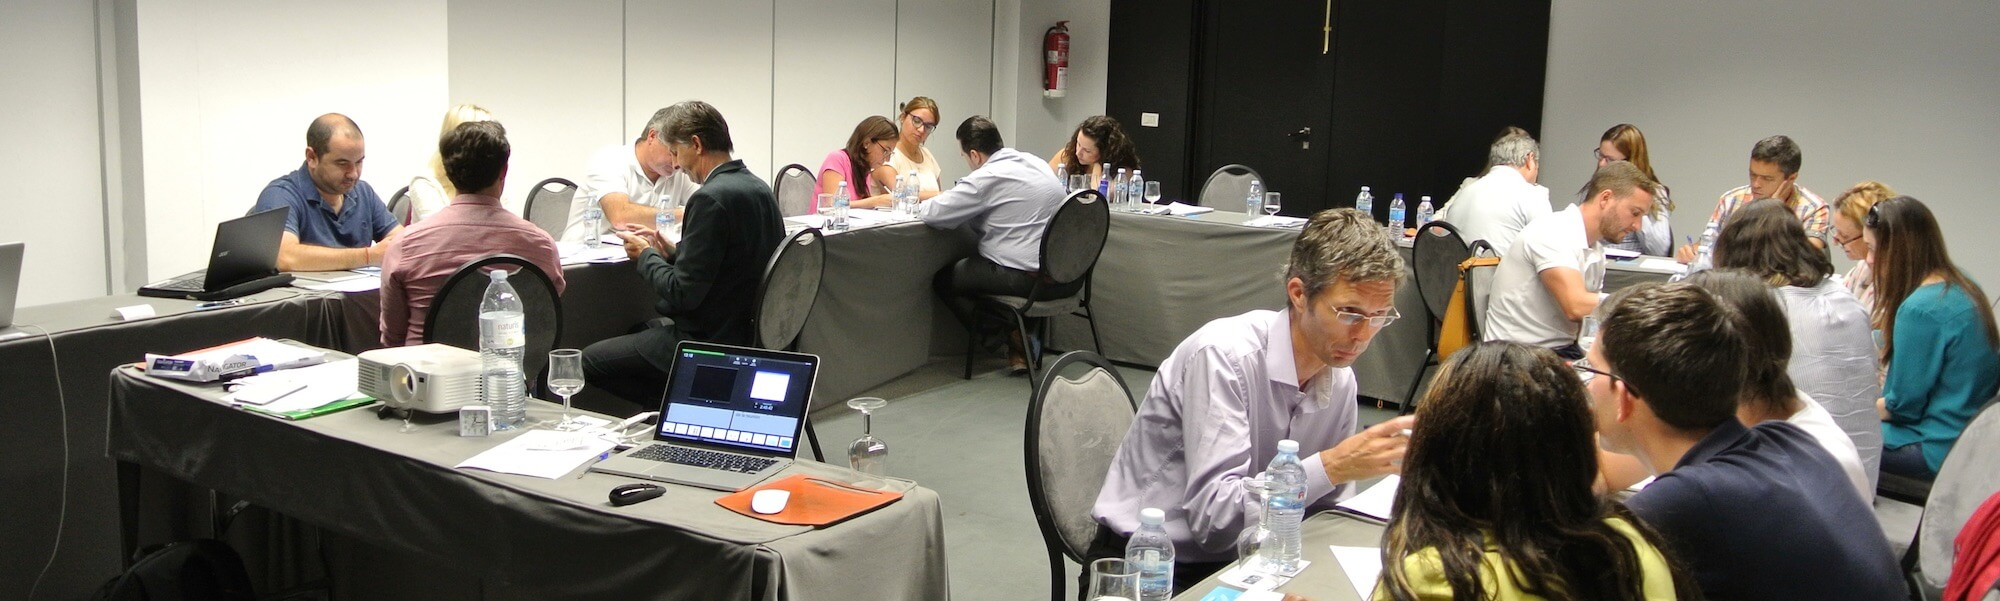 Taller de Revenue Management trabajndo en equipo